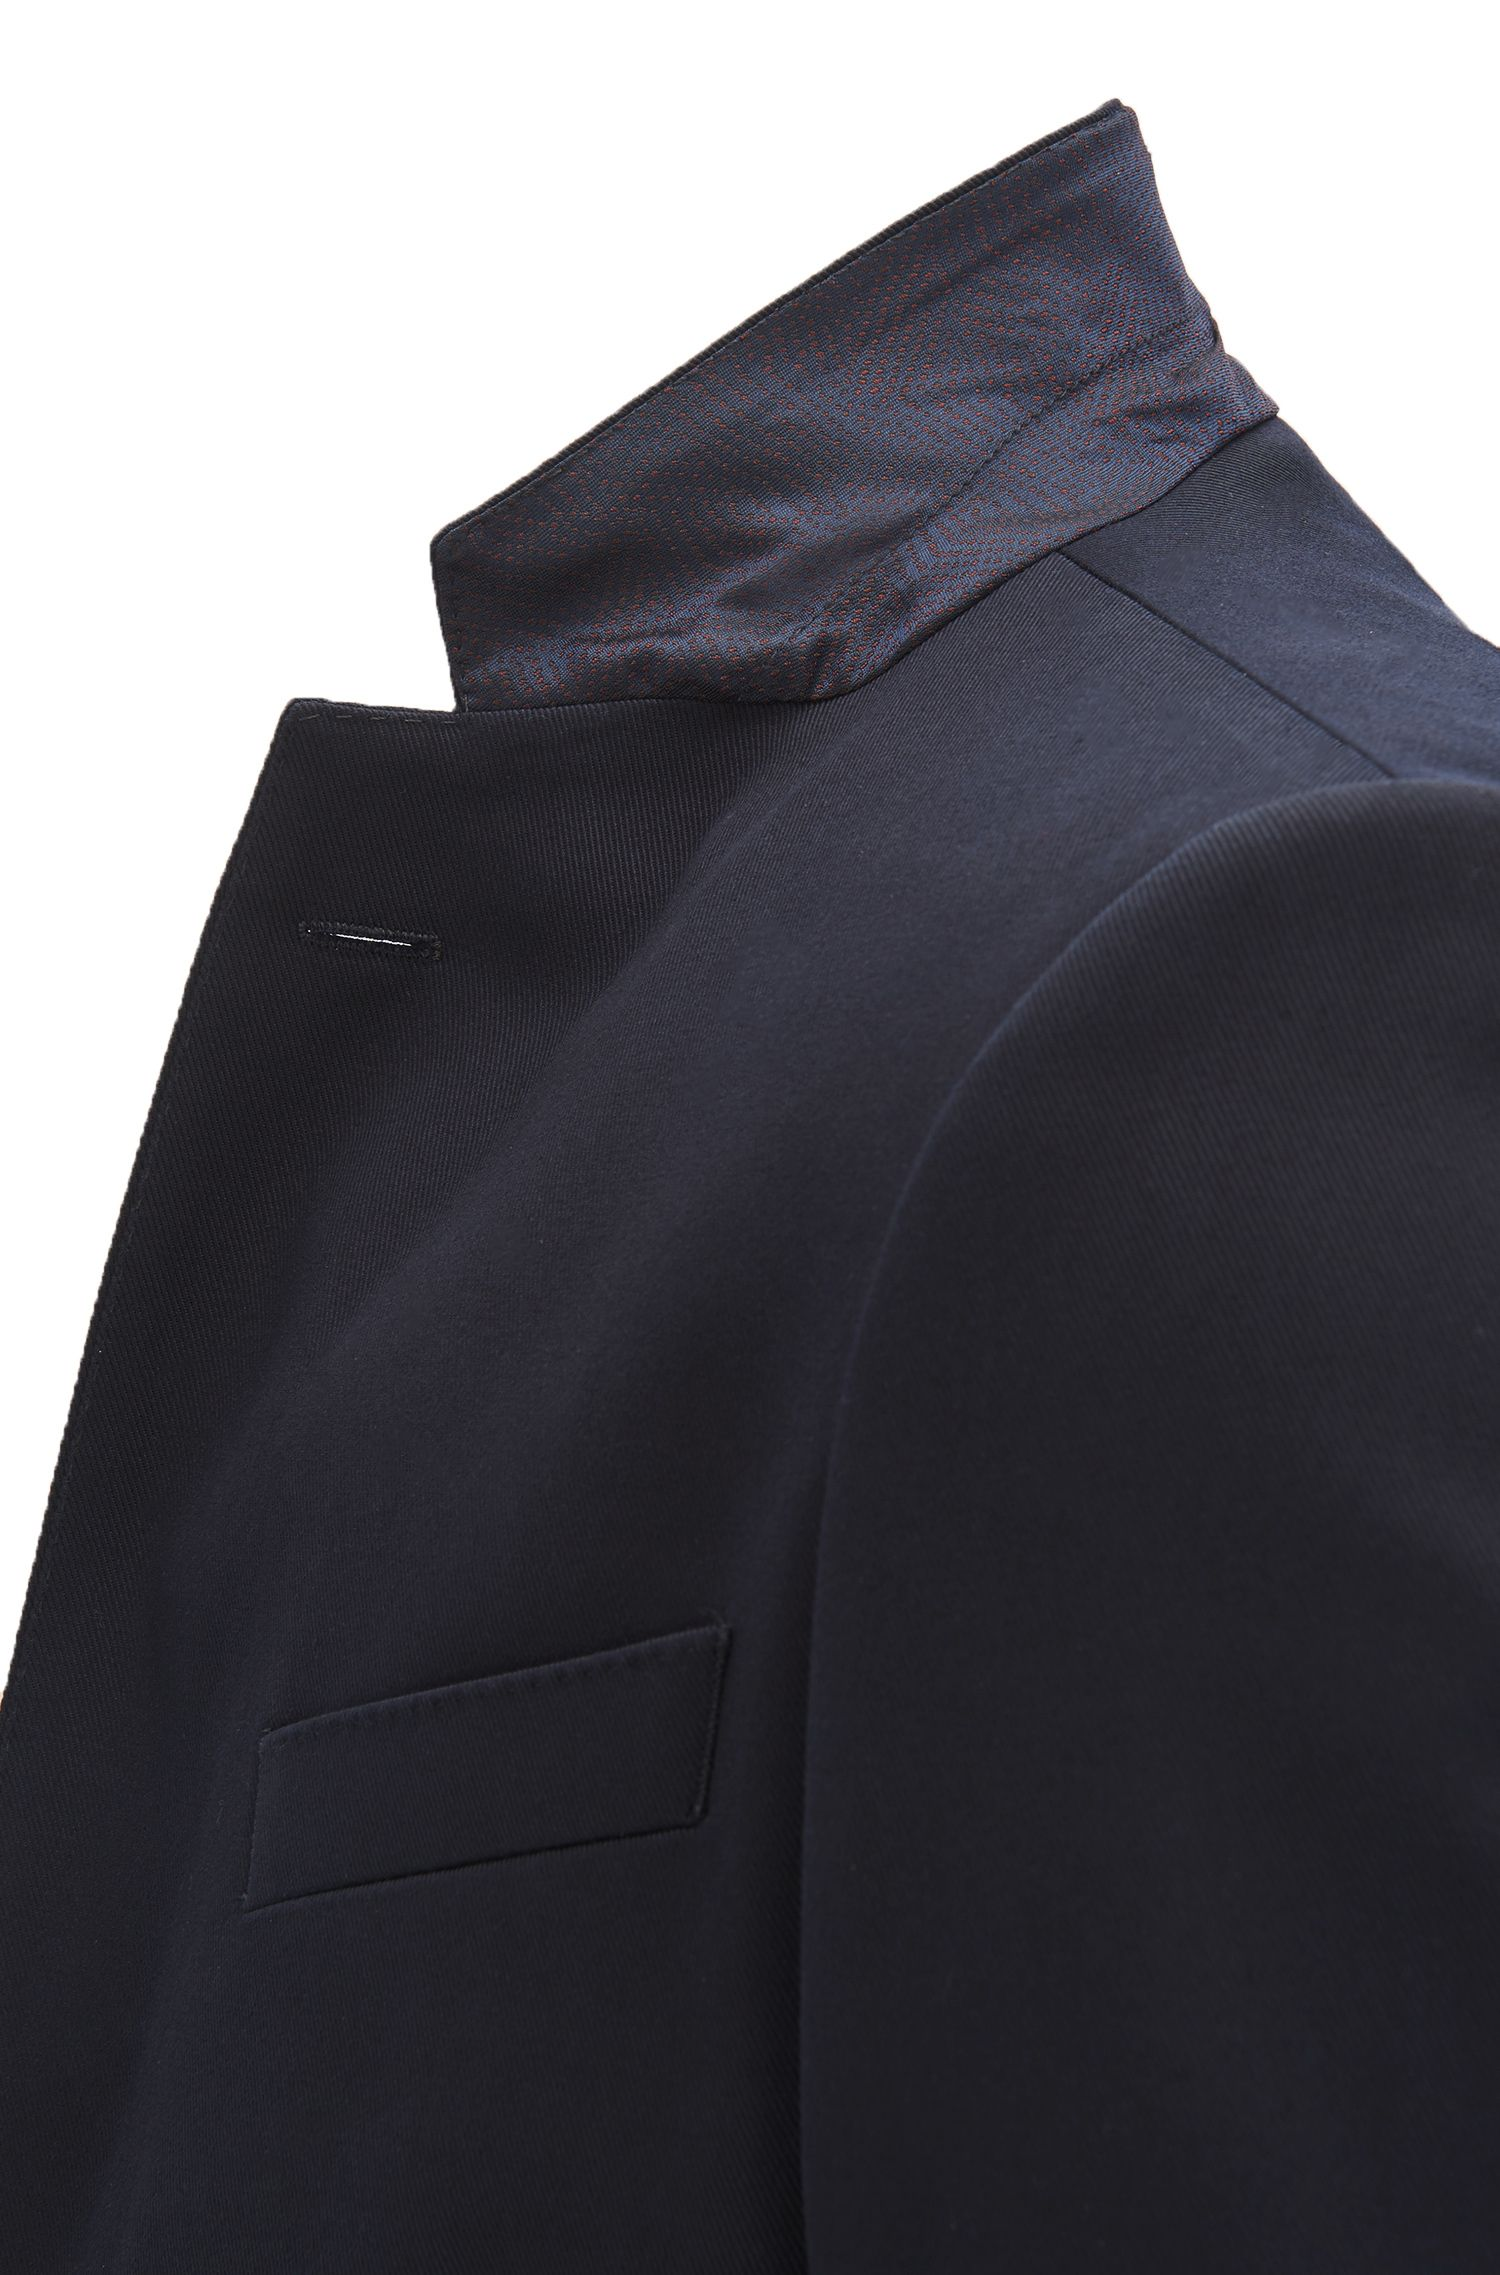 Slim-fit suit jacket in stretch cotton with AMF stitching